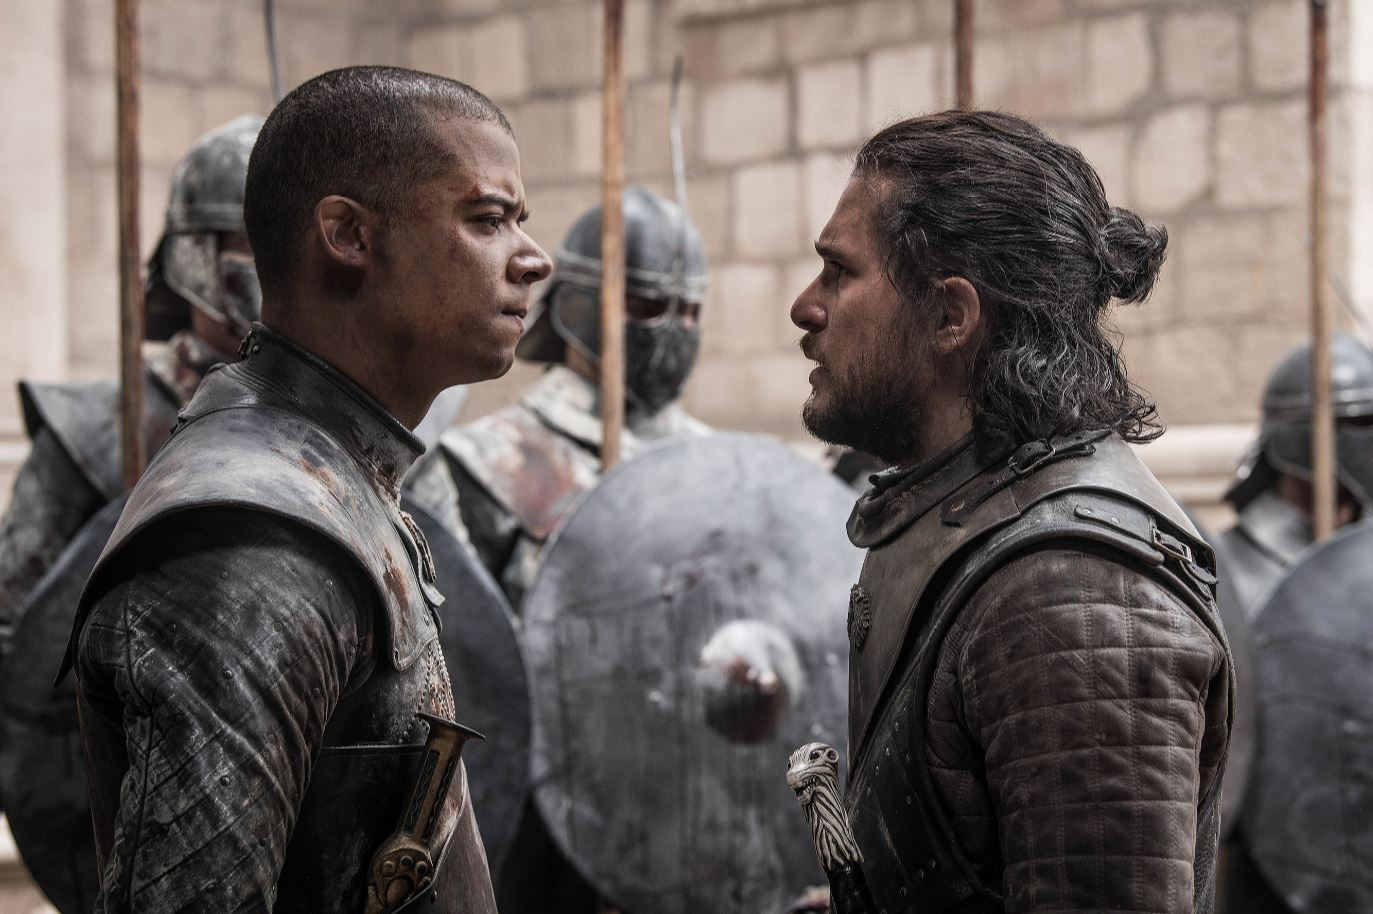 Game Of Thrones season 8: 7 questions we have after episode 6 The Iron Throne